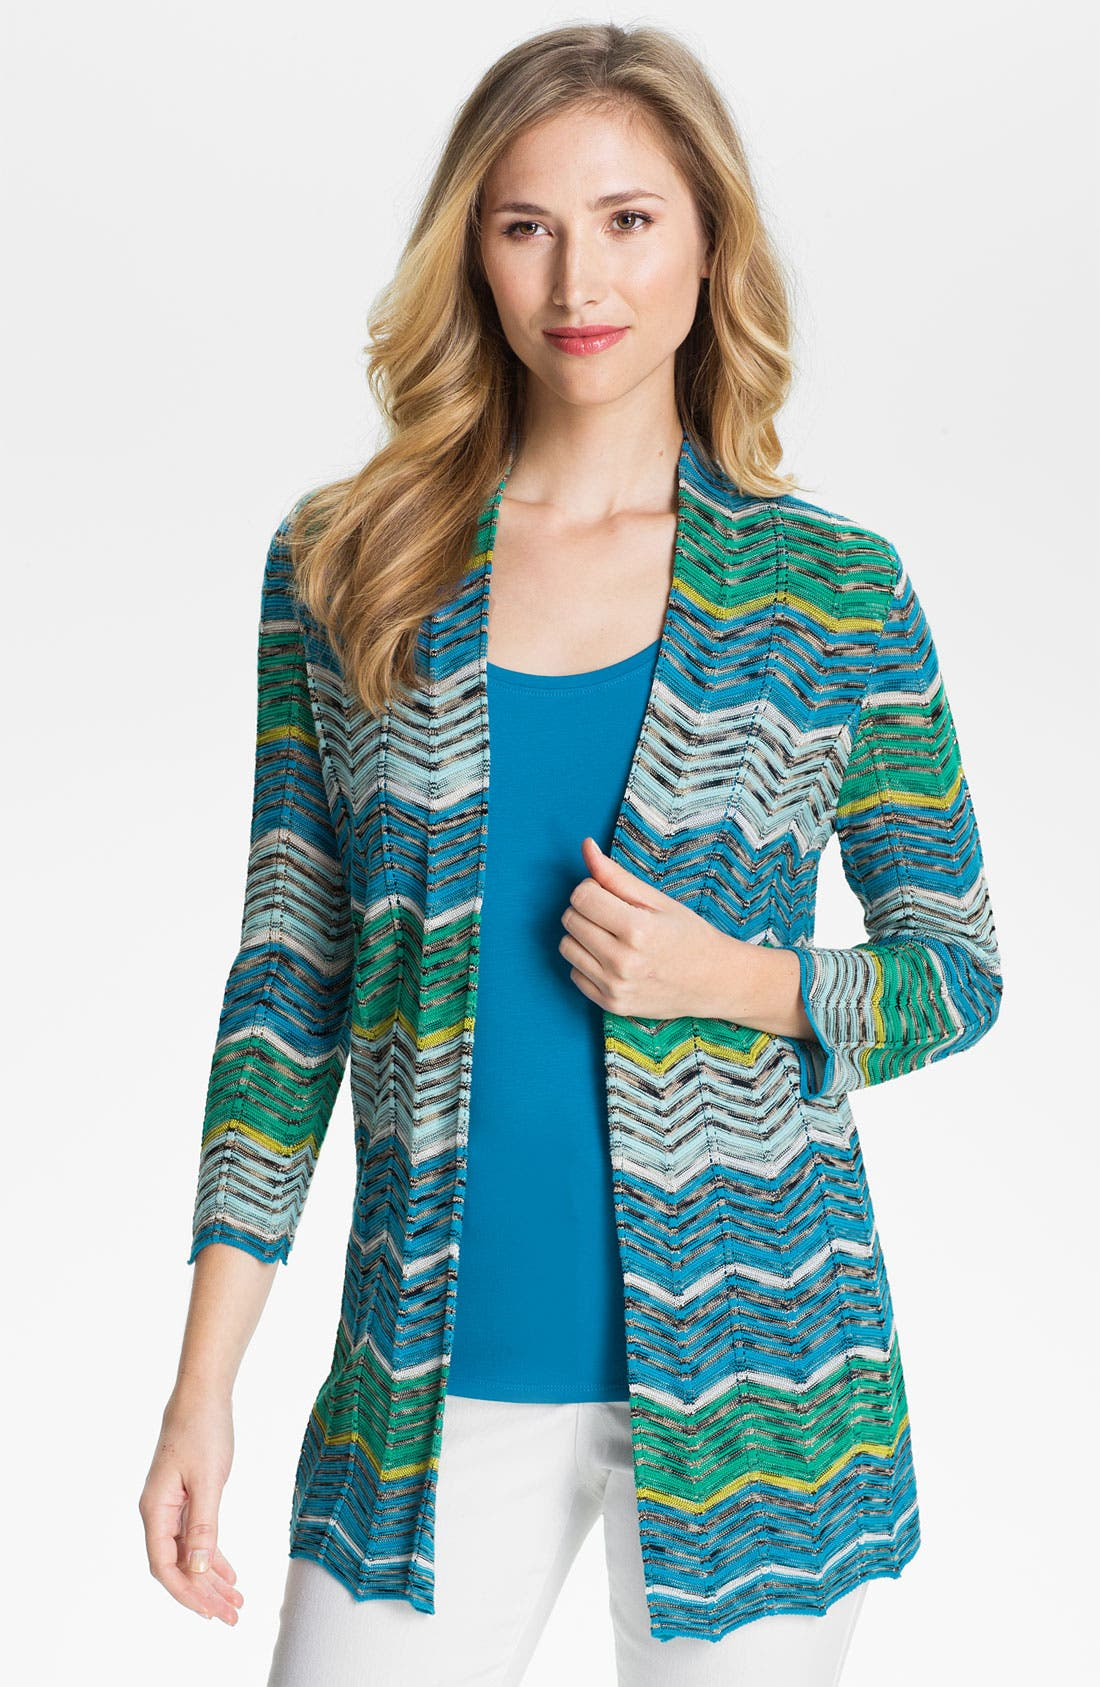 Alternate Image 1 Selected - Nic + Zoe Zigzag Cardigan (Petite)